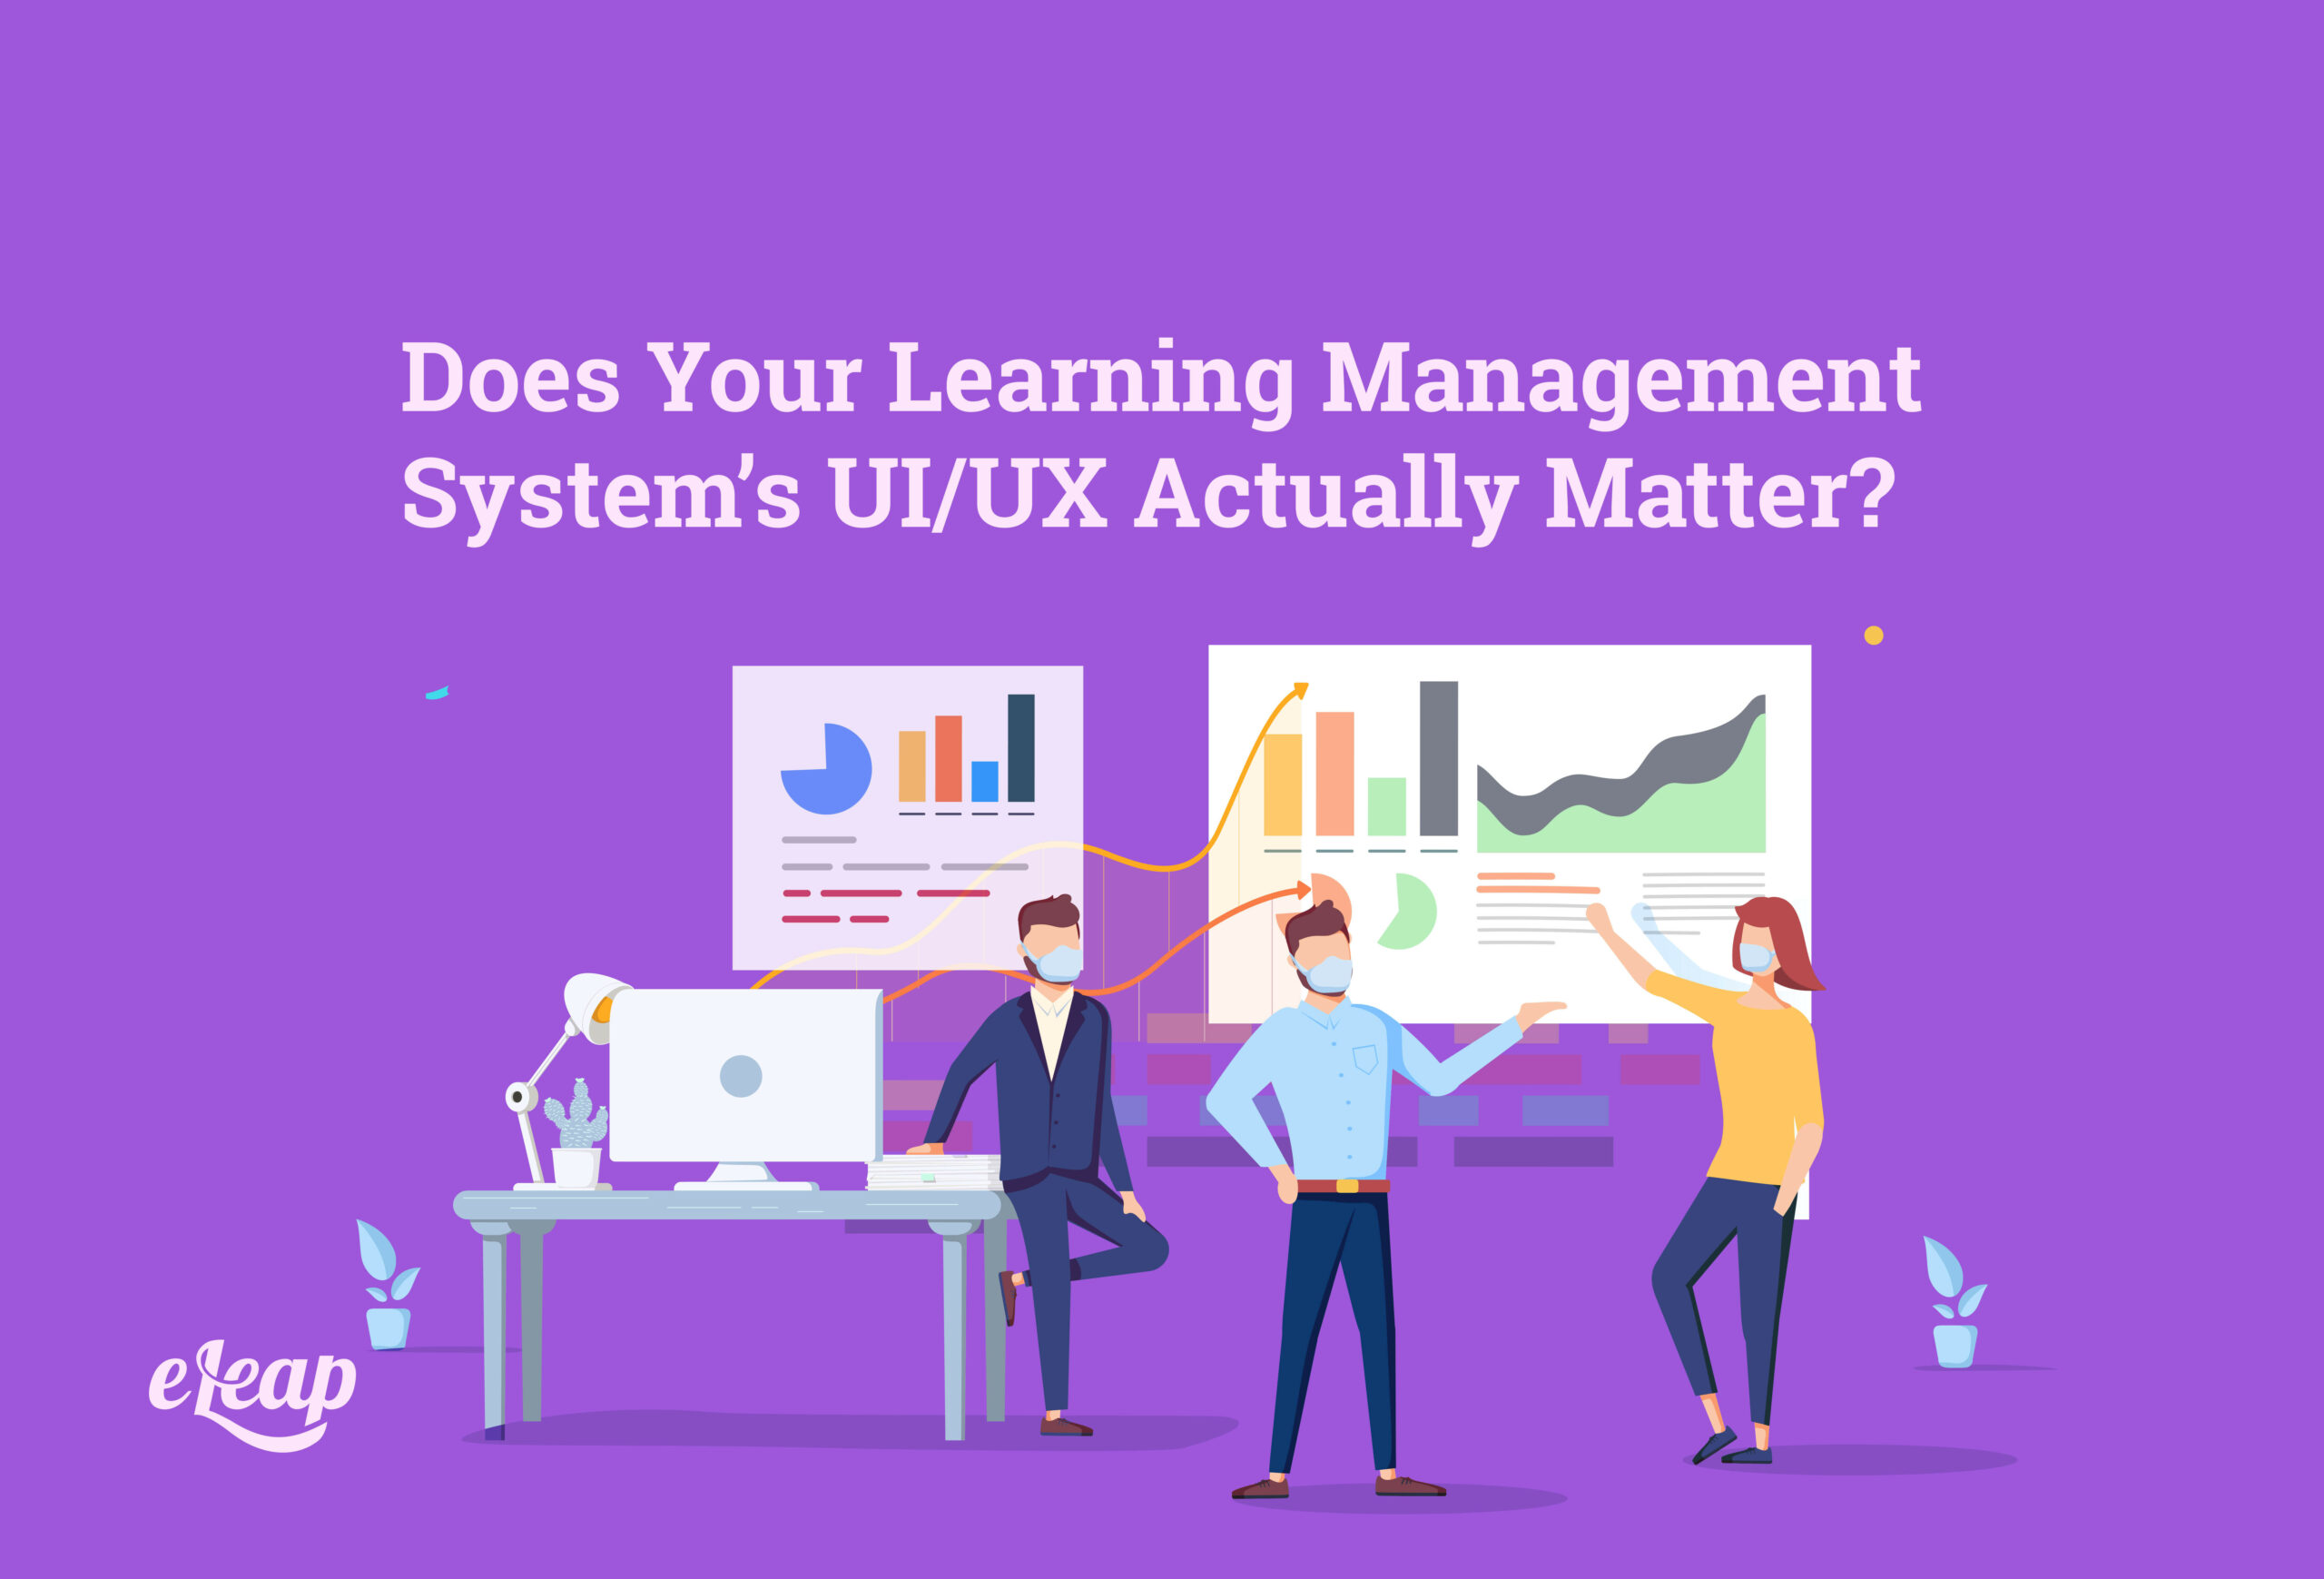 Does Your Learning Management System's UI/UX Actually Matter?